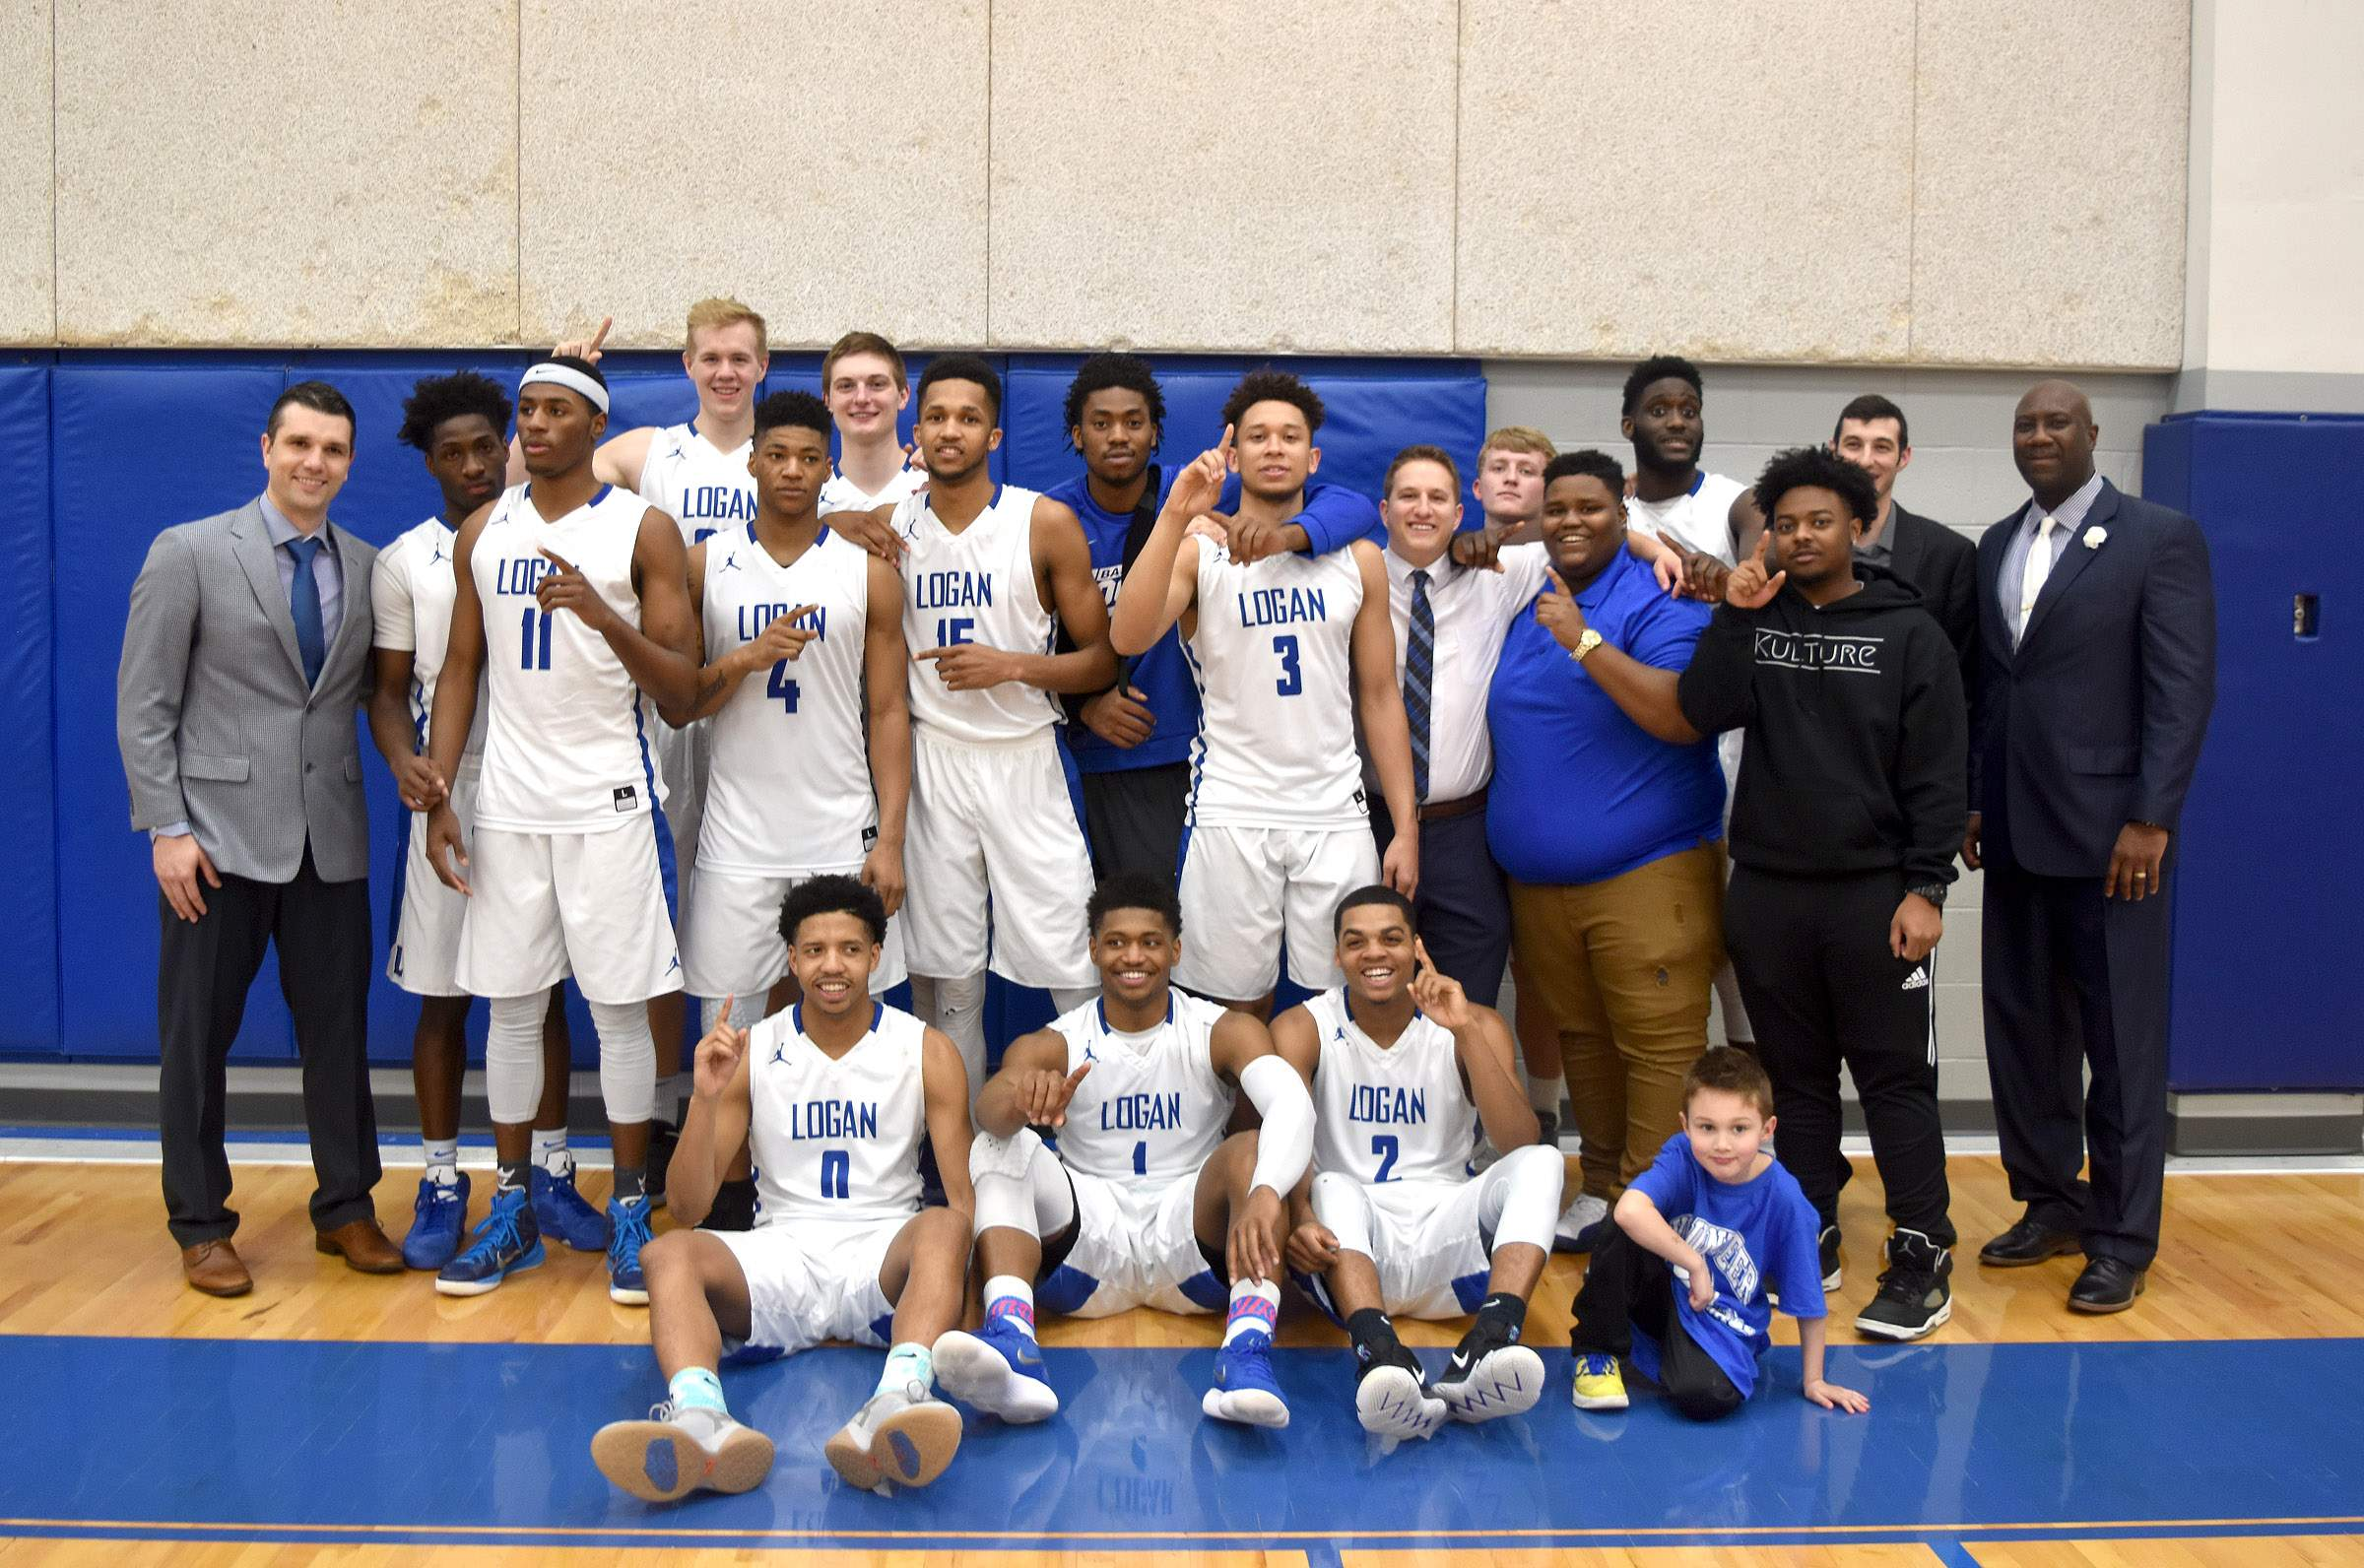 The 2017-18 Great Rivers Athletic Conference outright men's basketball champions, the John A. Logan College Volunteers.